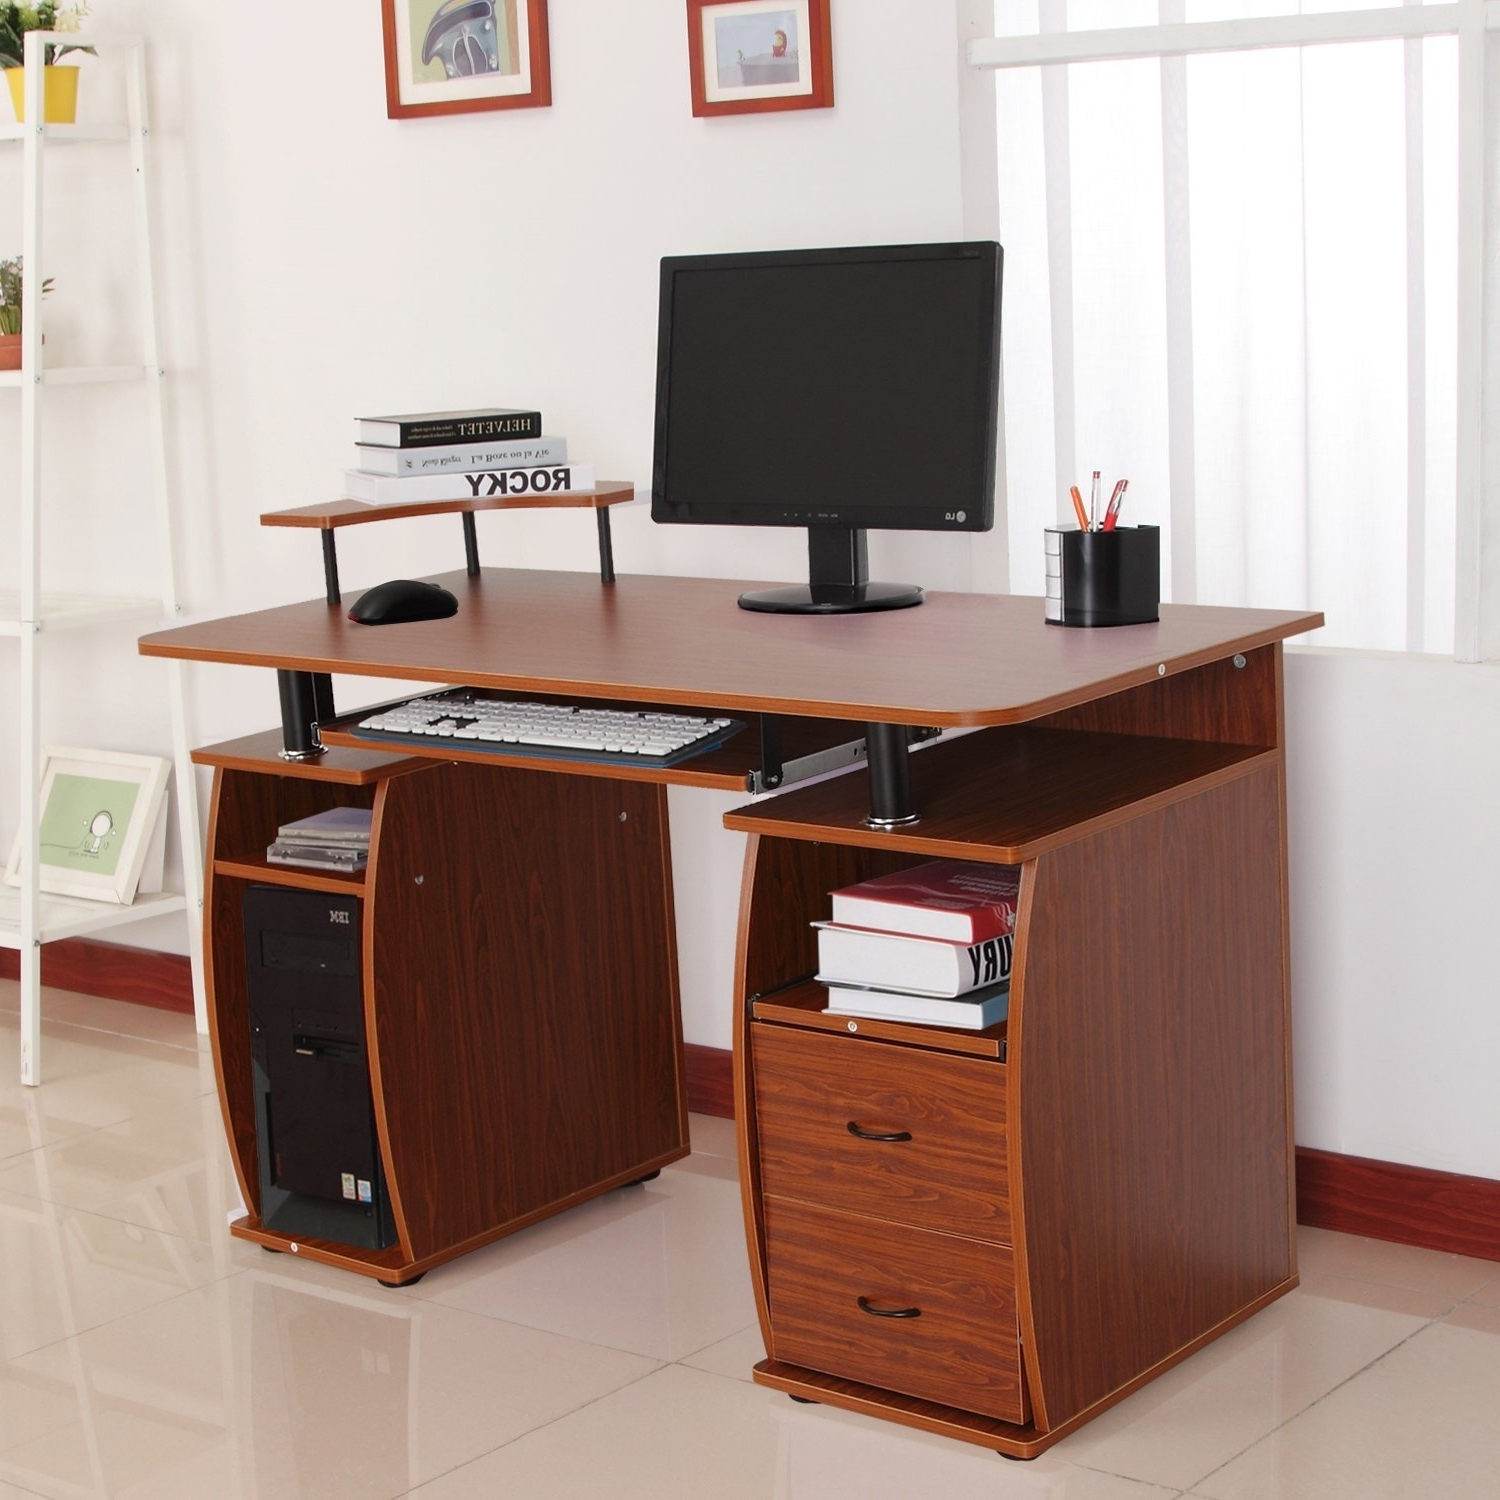 Most Current Computer Desks With Printer Shelf Within 73 Most Bang Up Bedroom Desk L Black Computer With Drawers Corner (View 13 of 20)